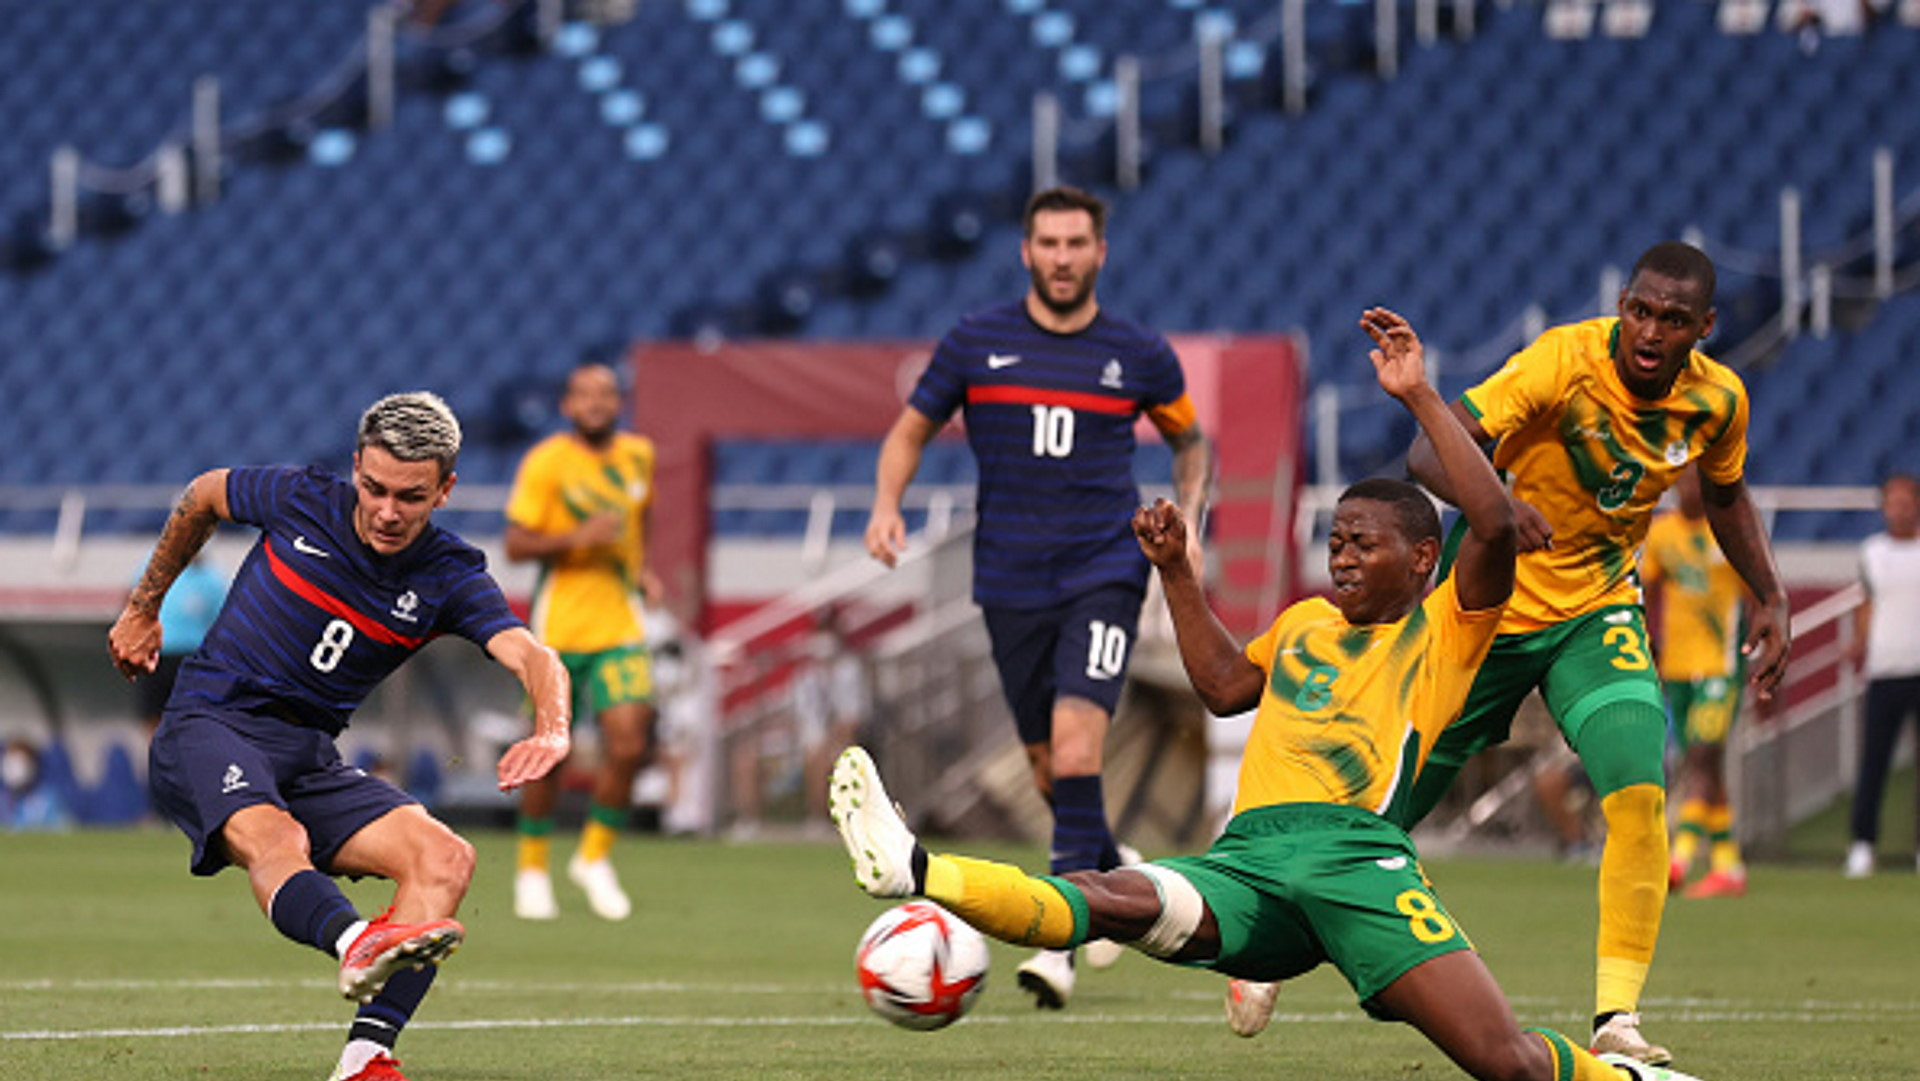 France U23 4-3 South Africa U23: Gignac hat-trick leaves Notoane's side on the brink of Olympic elimination